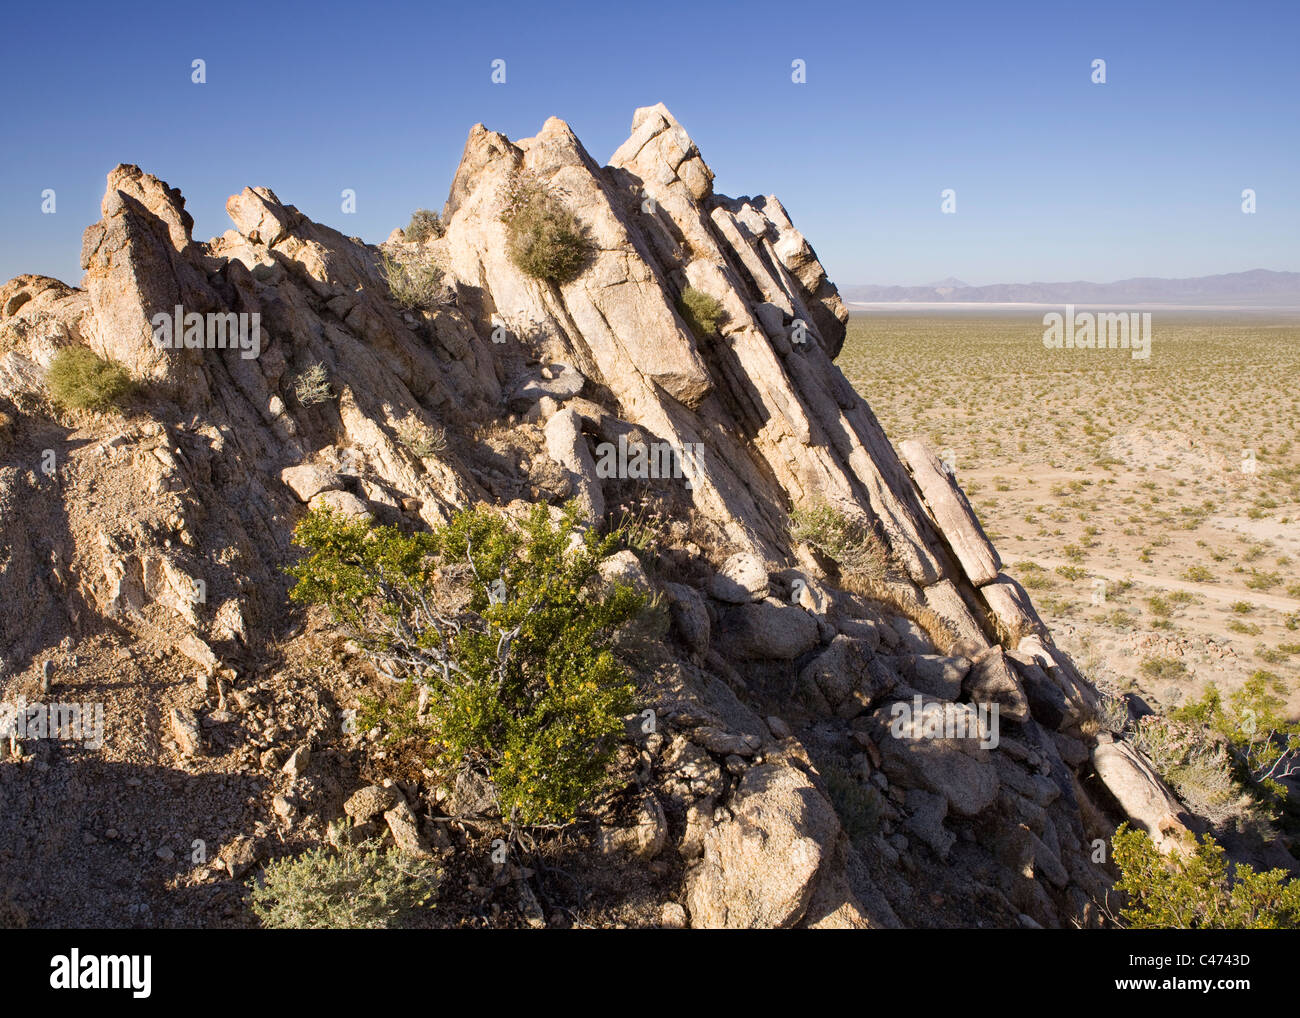 Gneiss rock layers horizontally protrude from the floor of the Mojave desert floor - California USA - Stock Image